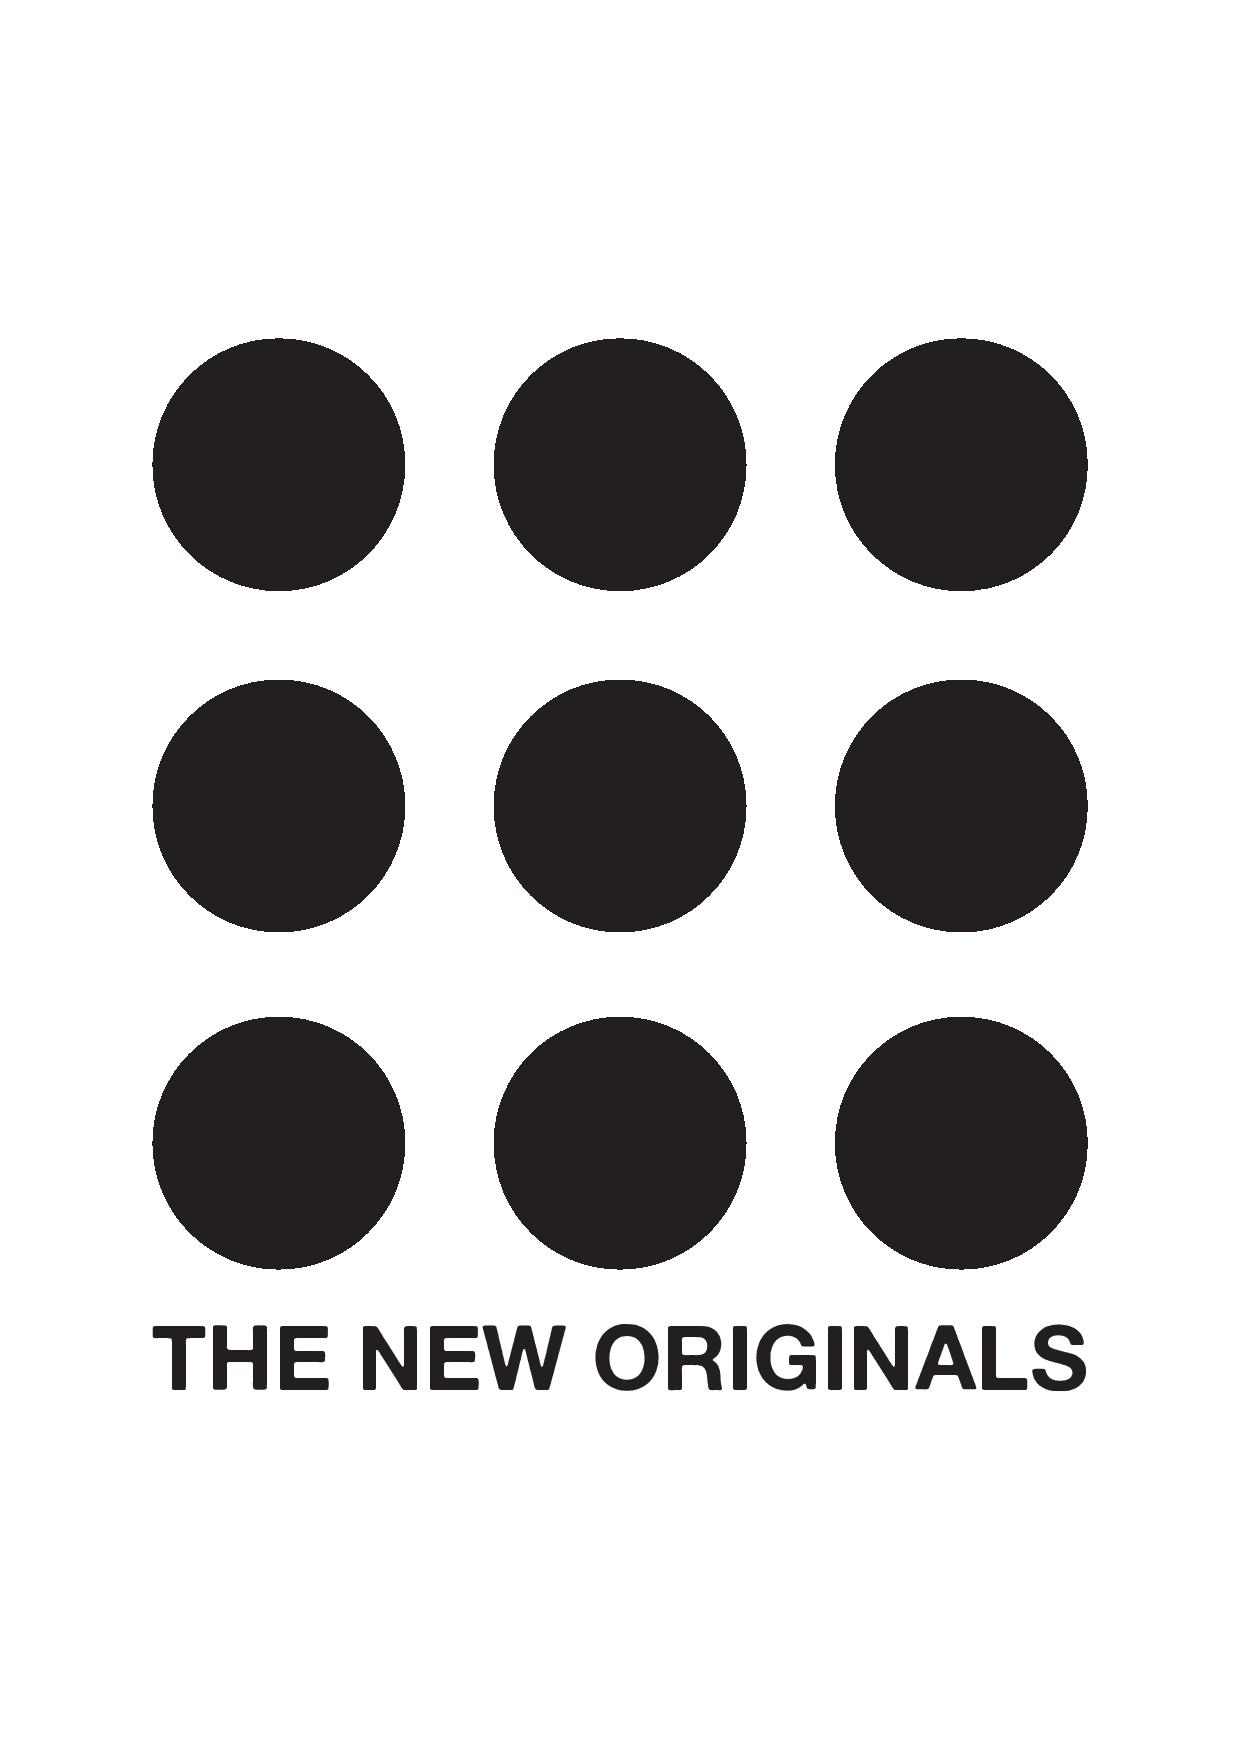 THE NEW ORIGINALS